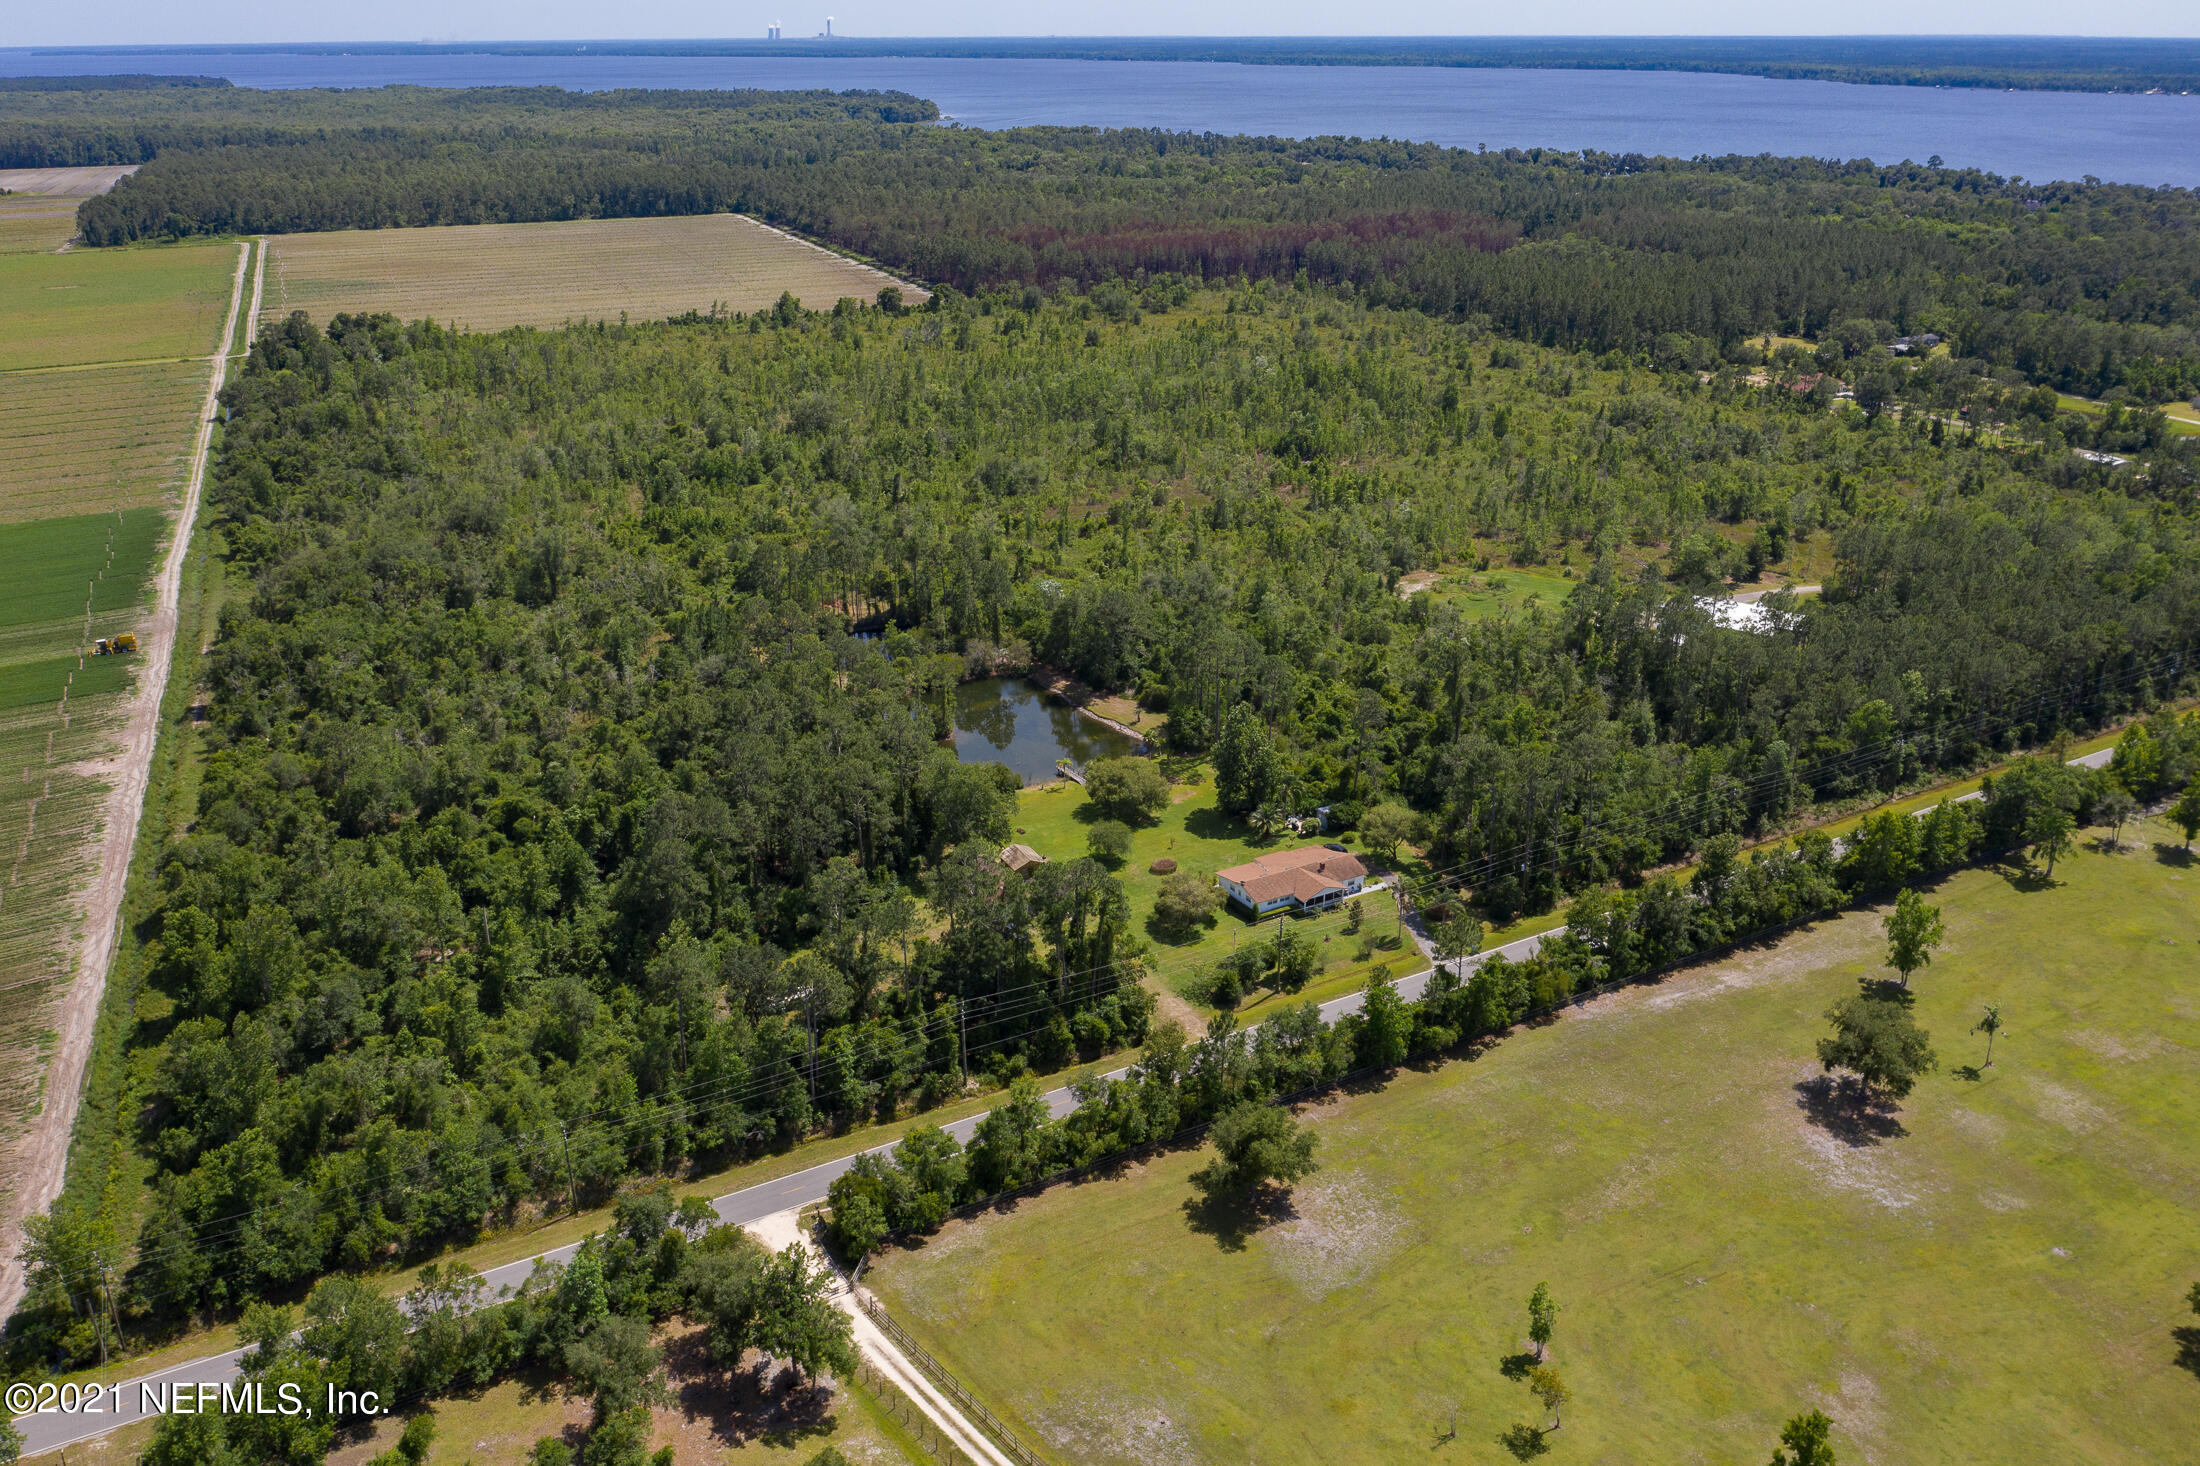 0 COUNTY ROAD 208, ST AUGUSTINE, FLORIDA 32092, ,Vacant land,For sale,COUNTY ROAD 208,1136652